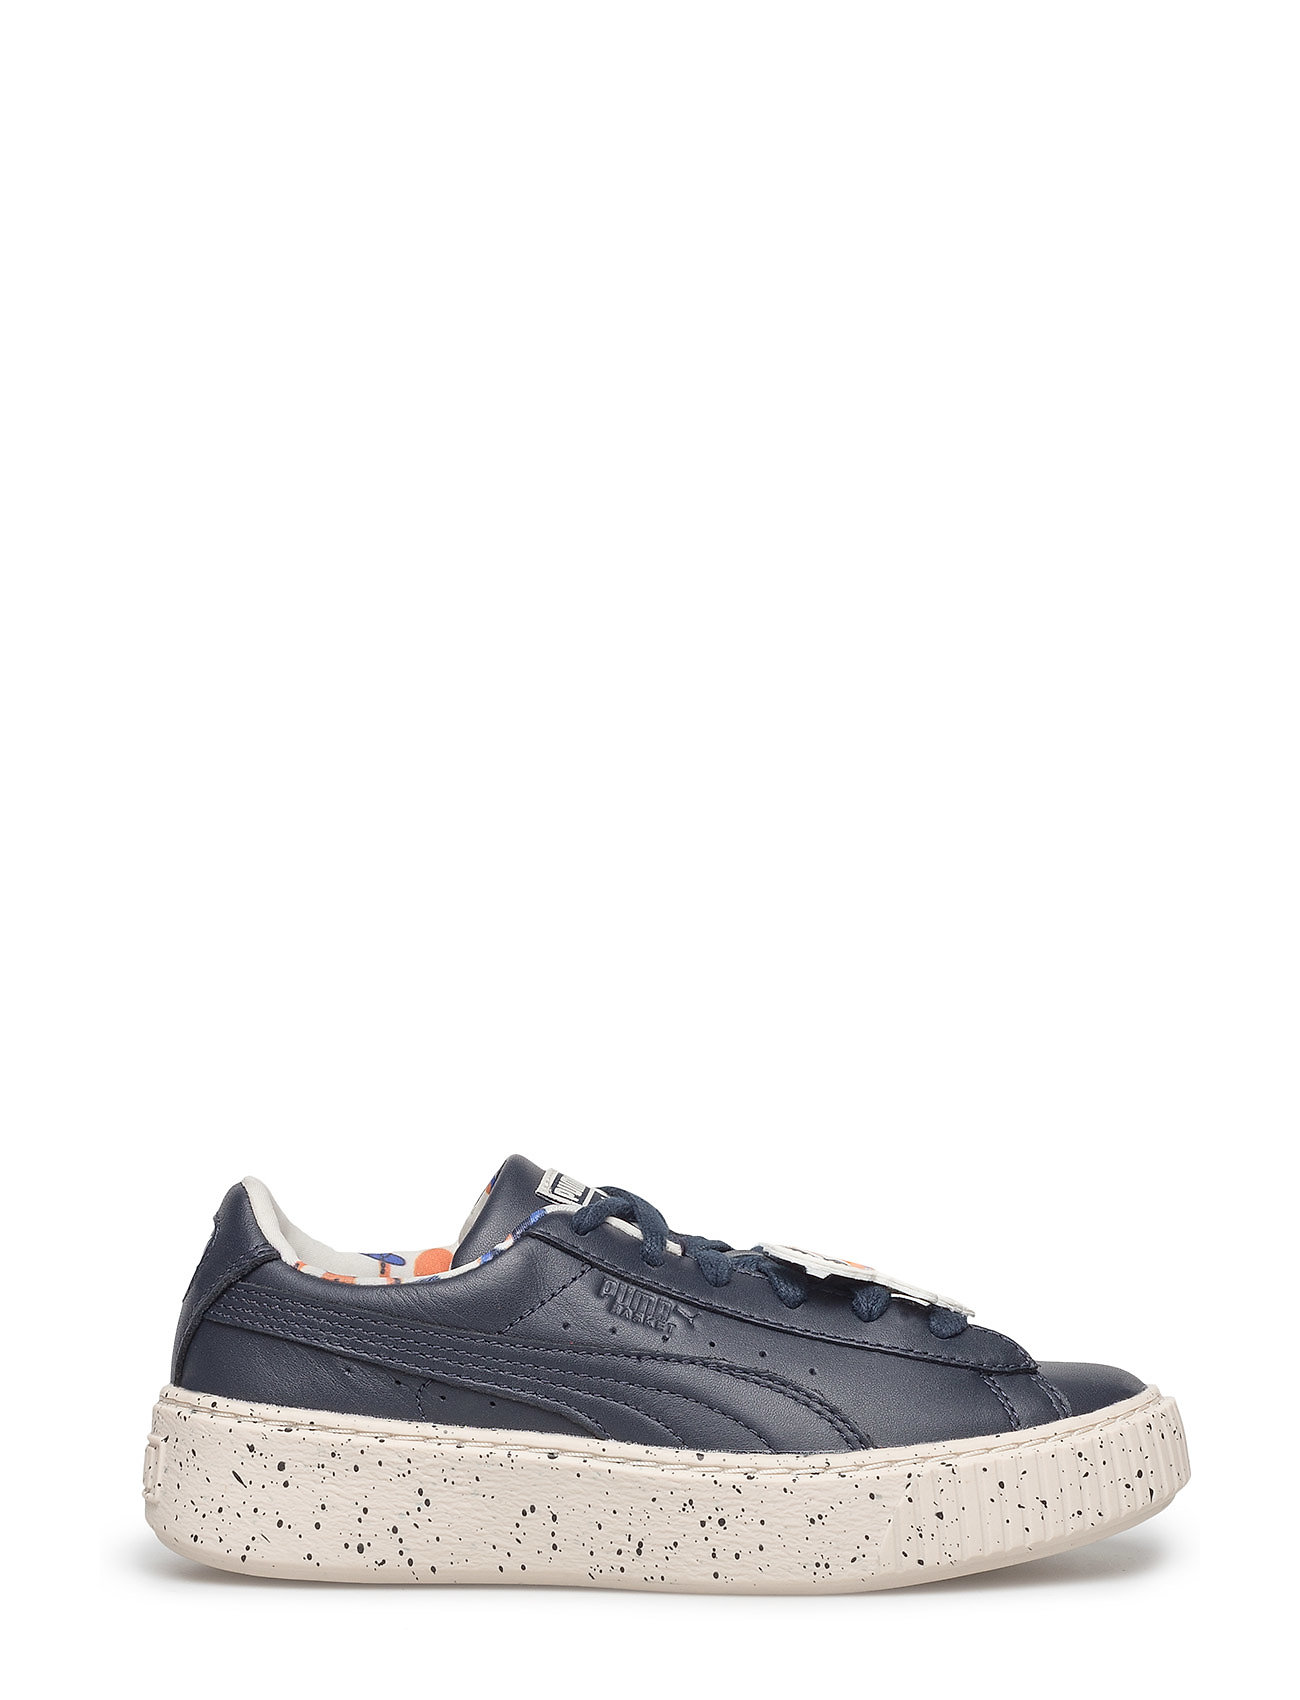 Puma Suede Platform Speckled Black Cool Sneakers